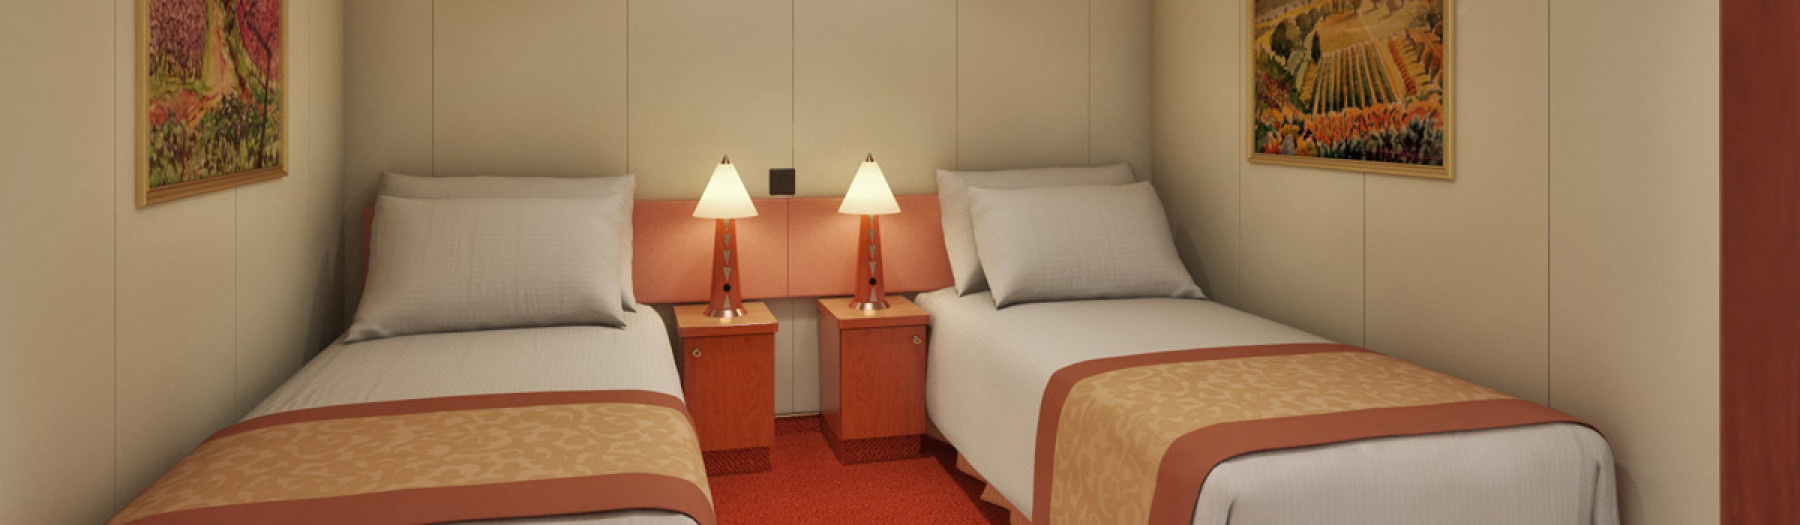 Carnival Cruise Lines Carnival Conquest Accommodation Inside.jpg